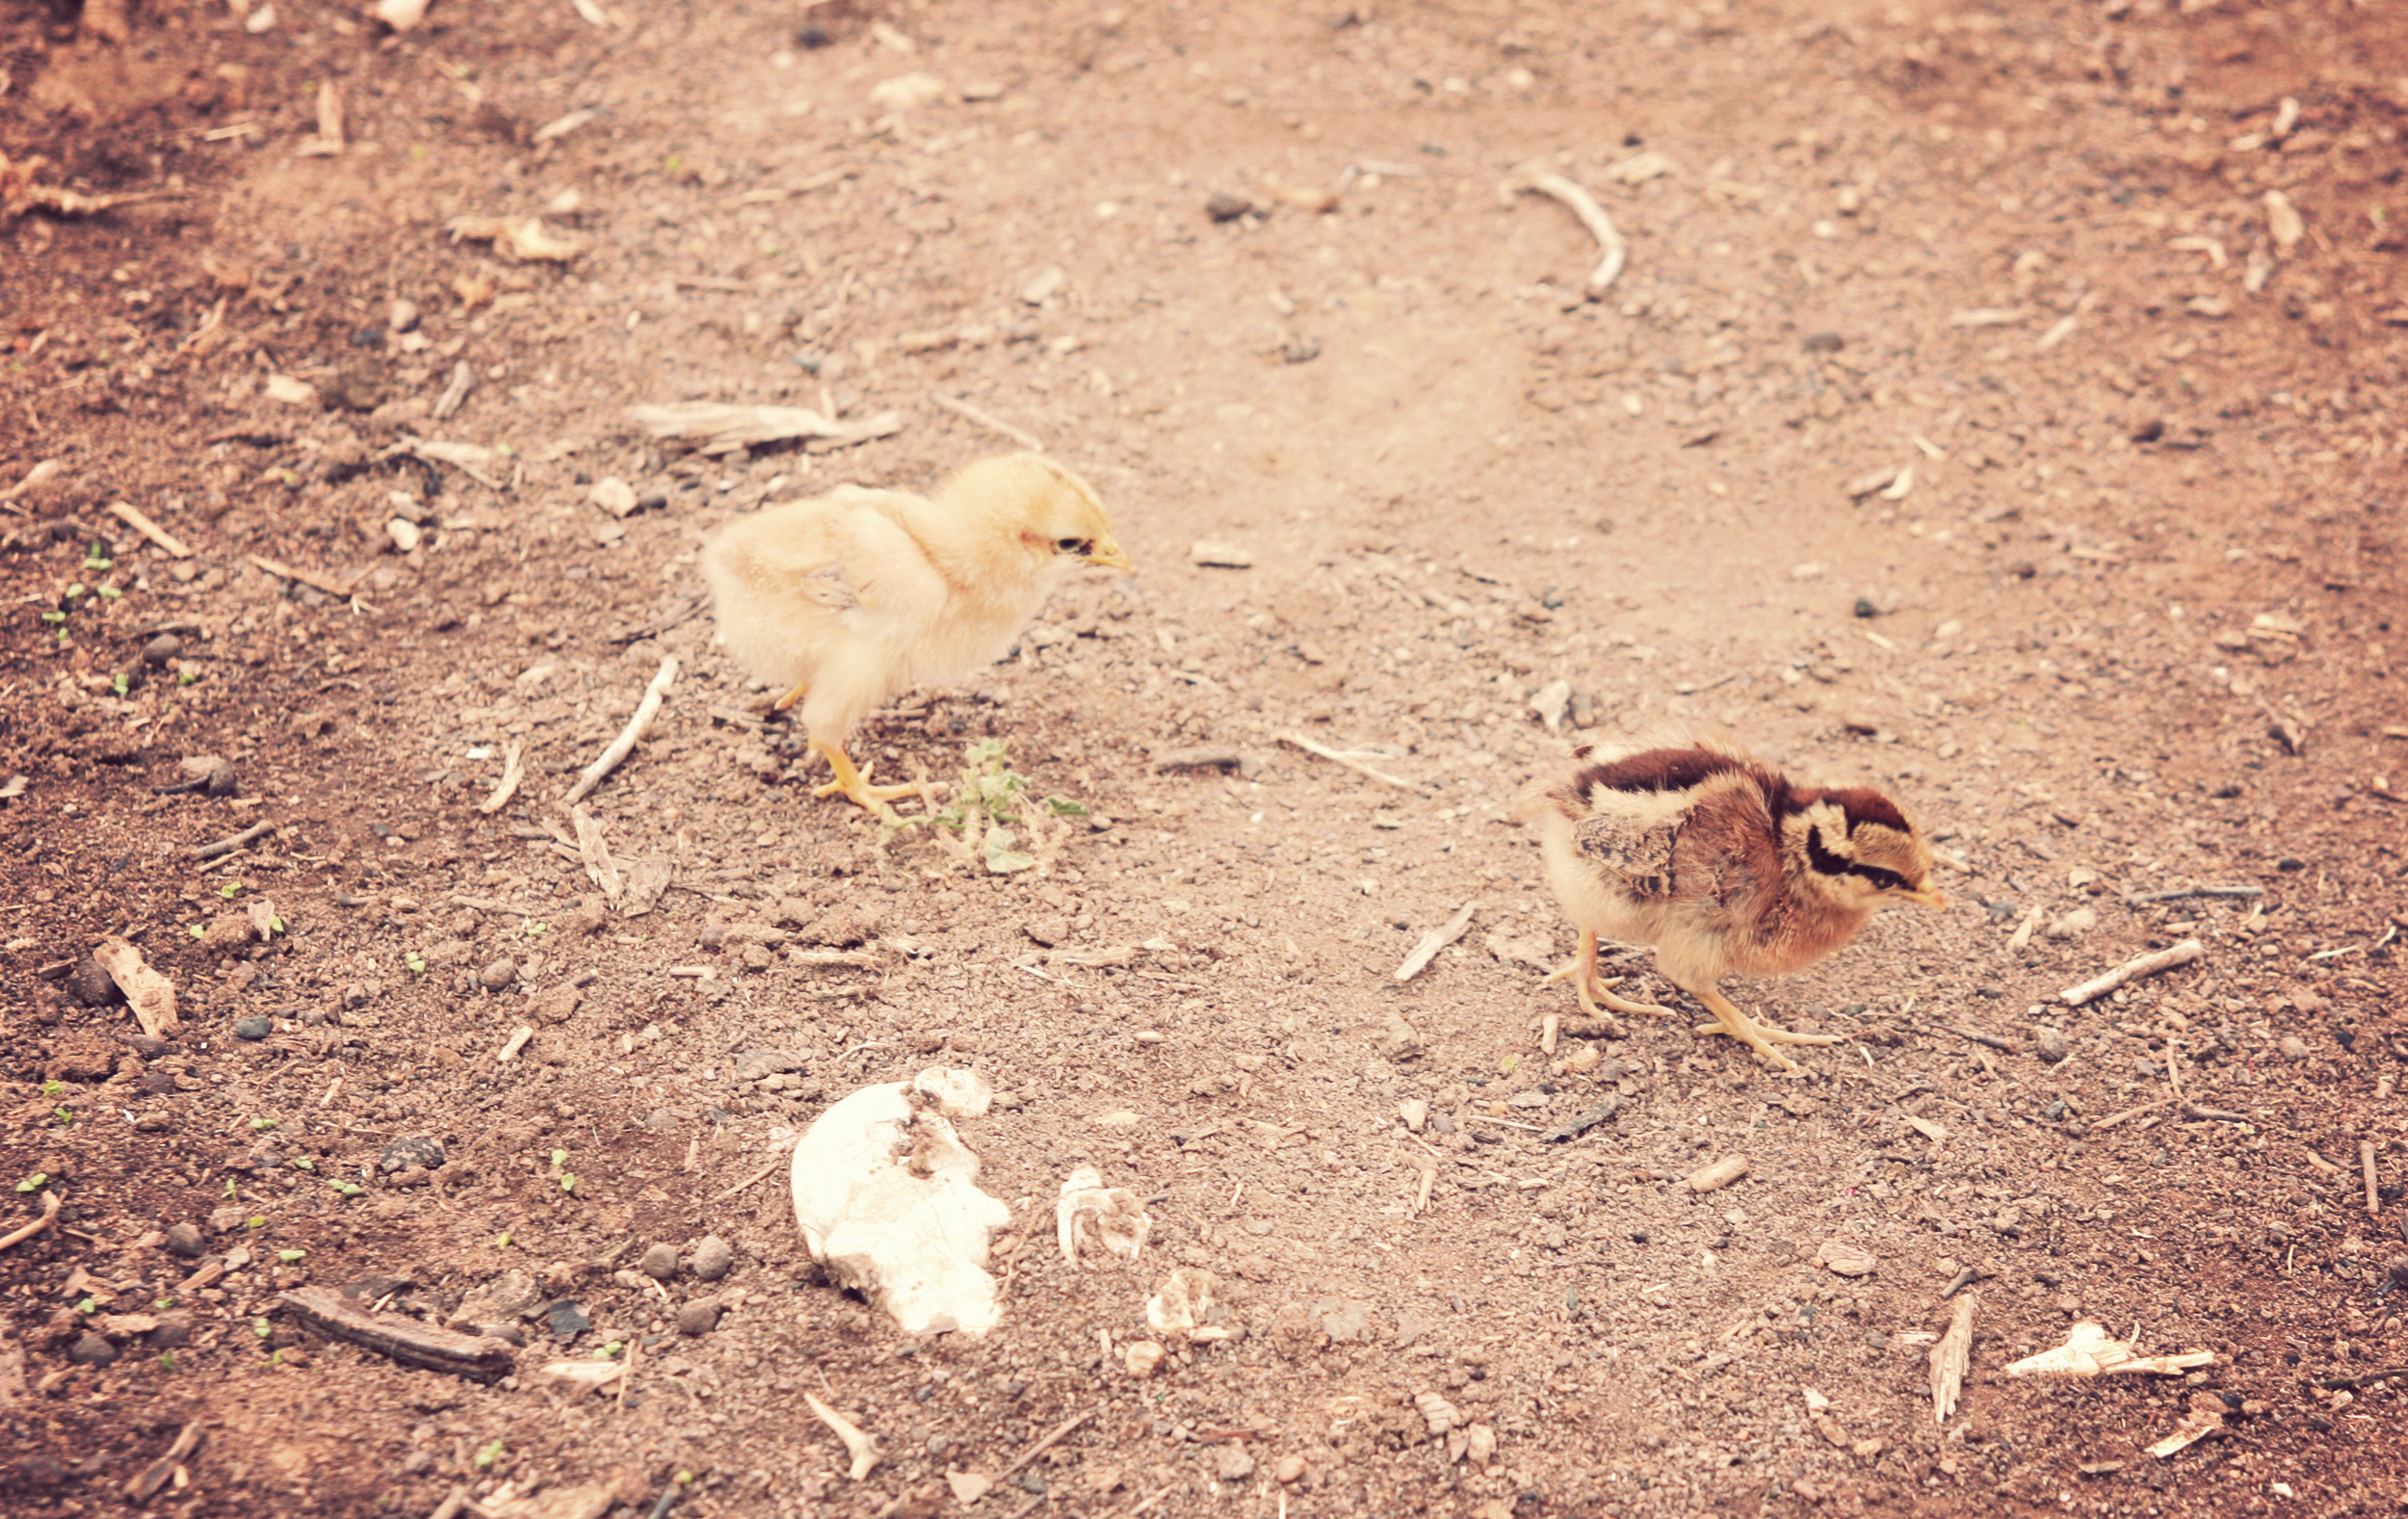 Little baby chicks running around!